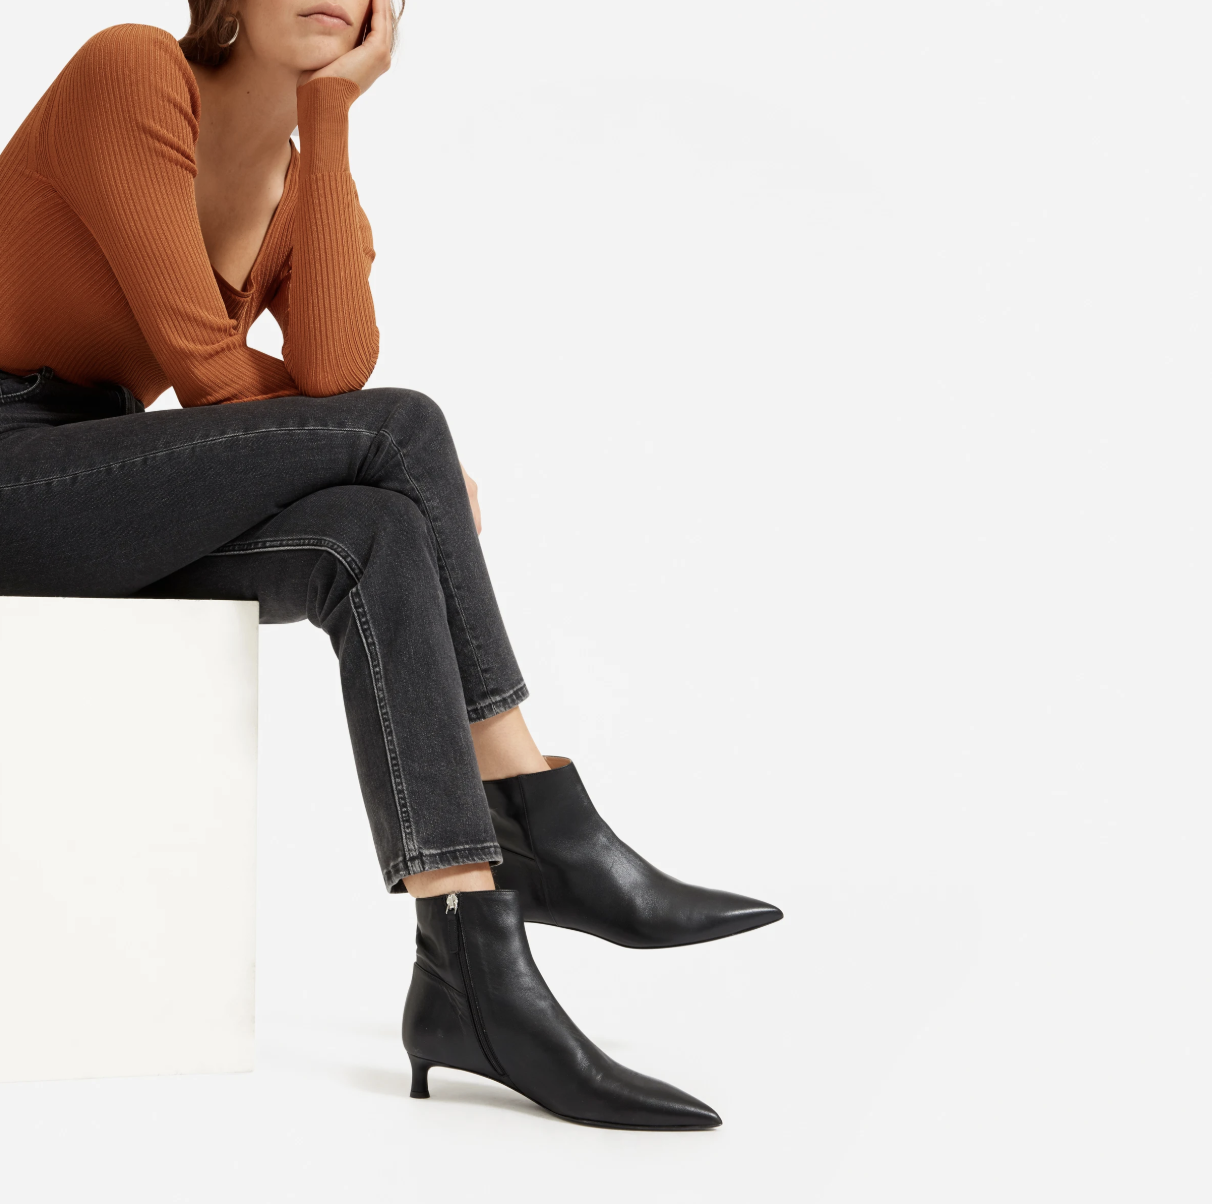 The Perfect Black Ankle Boot Does Not Exi— Wait No, Everlane Just Made It